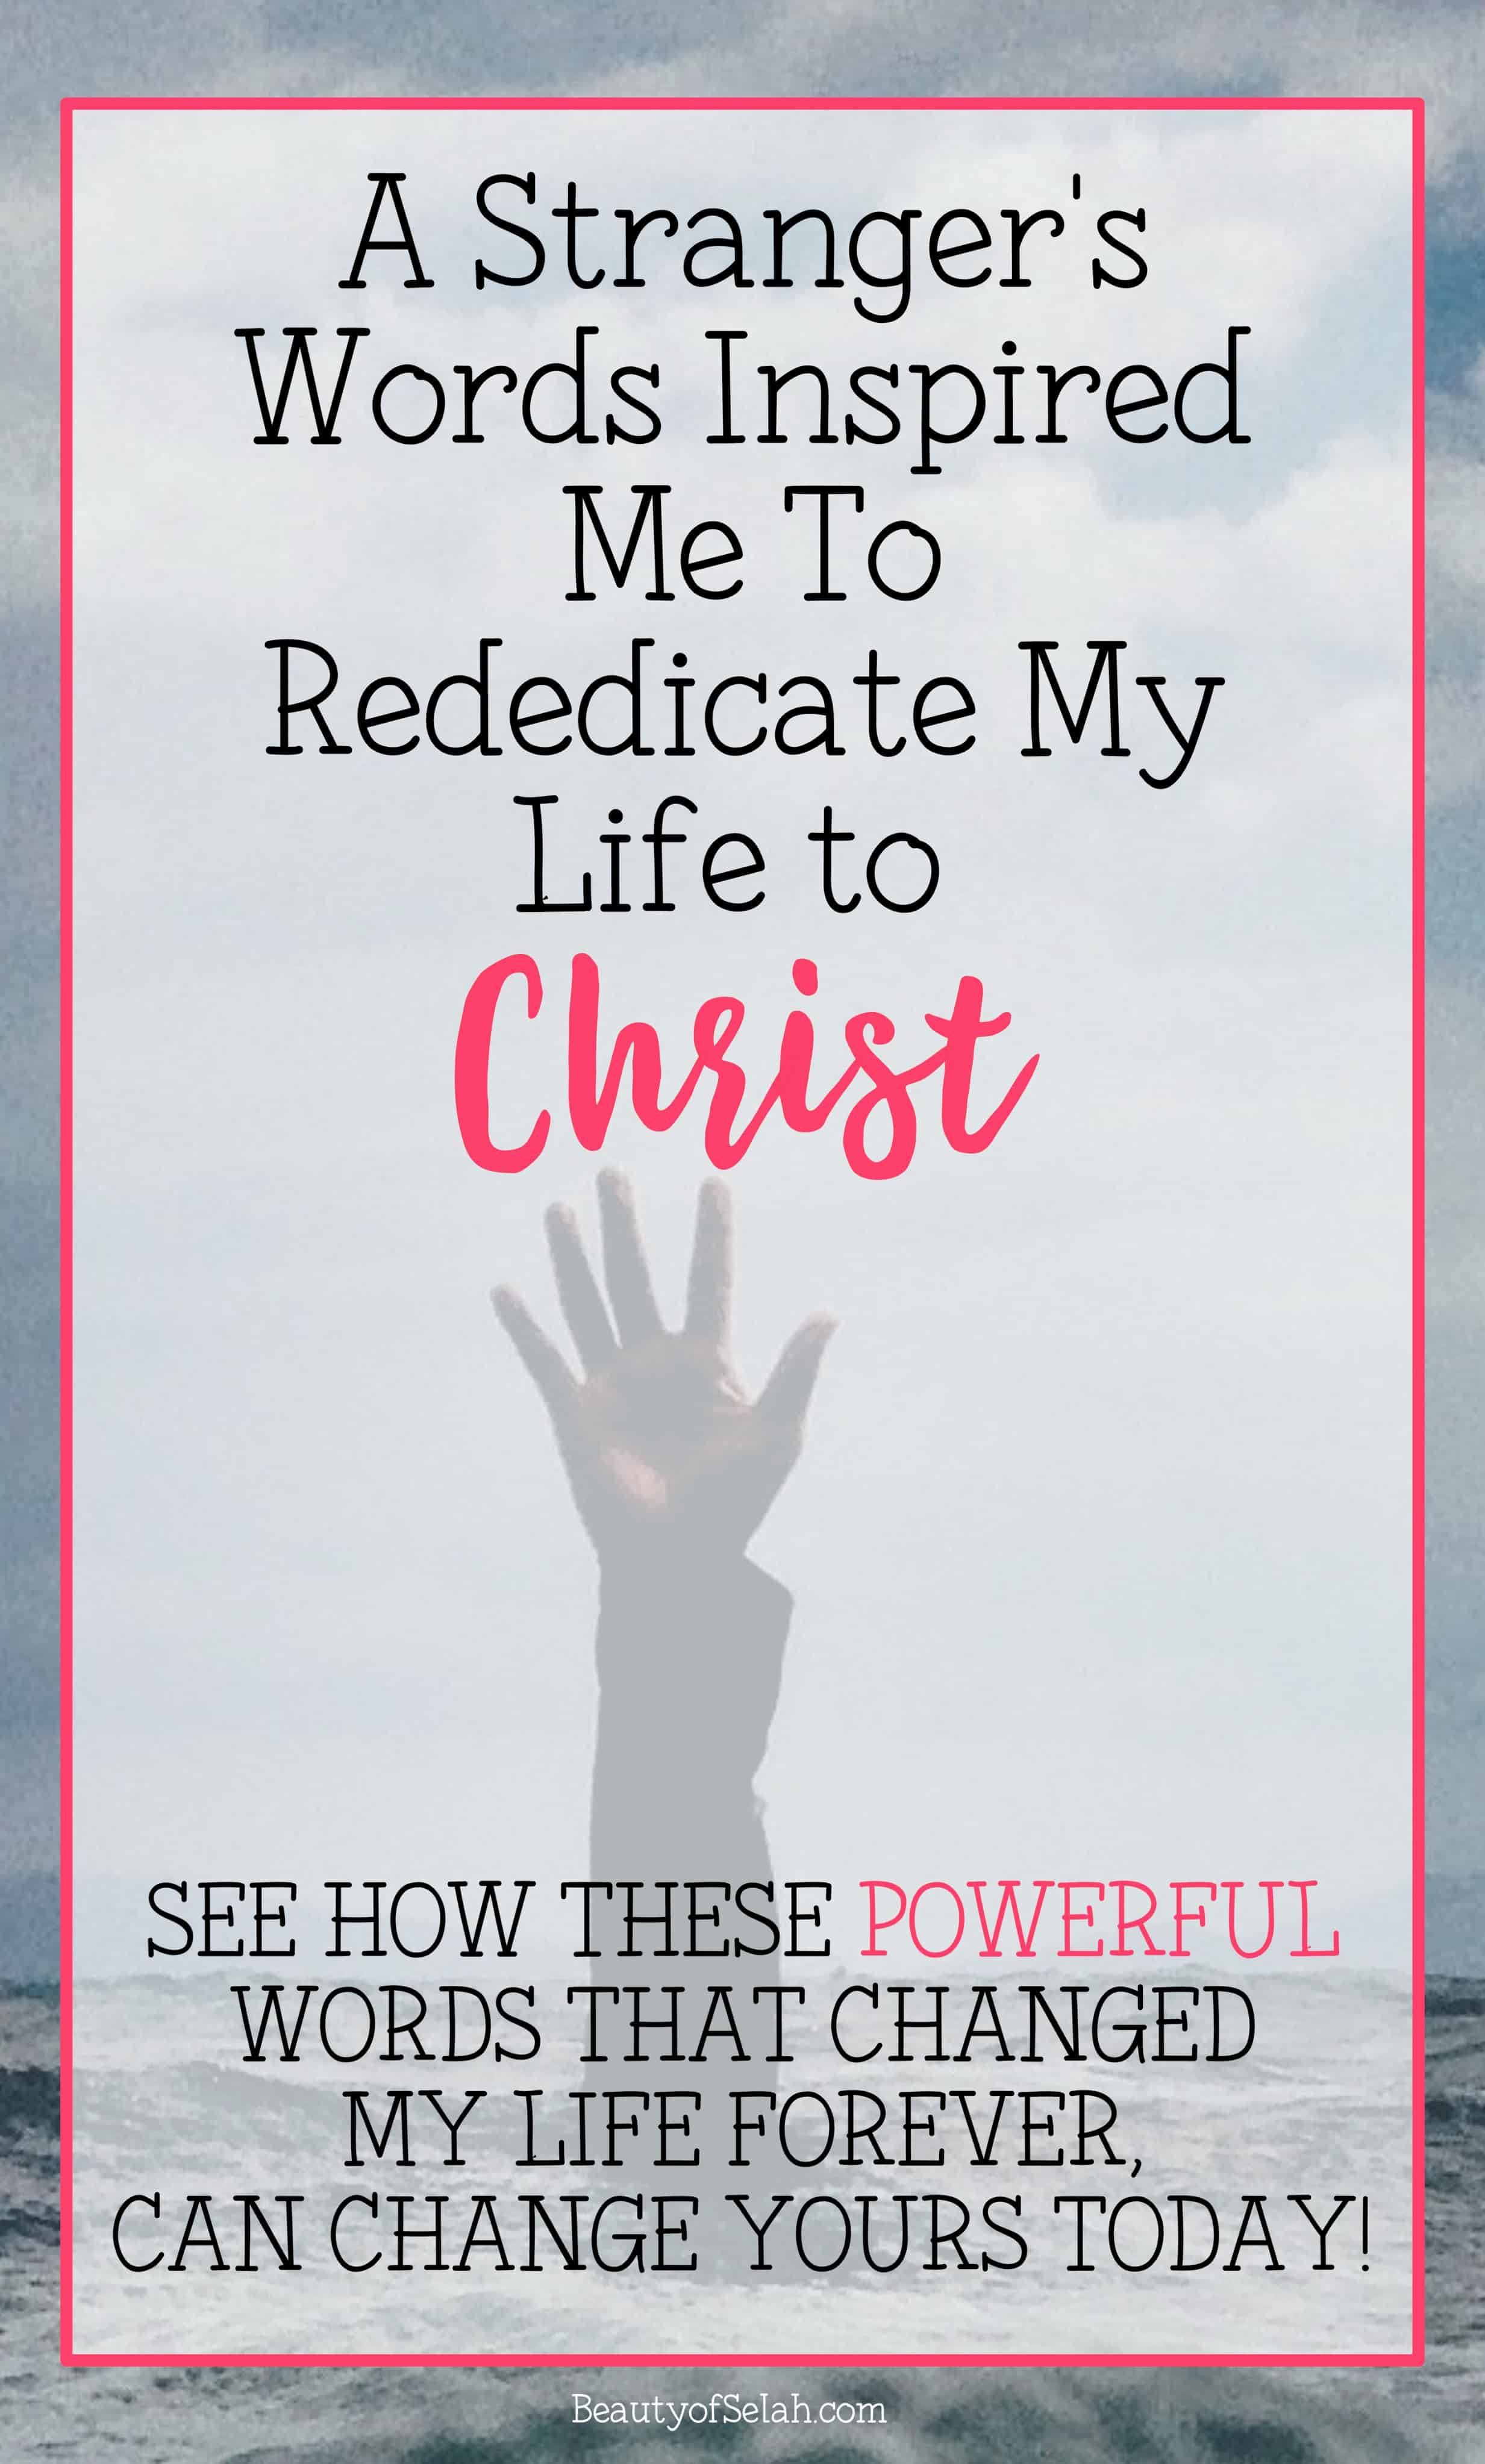 A stranger's words inspired me to rededicate my life to Christ